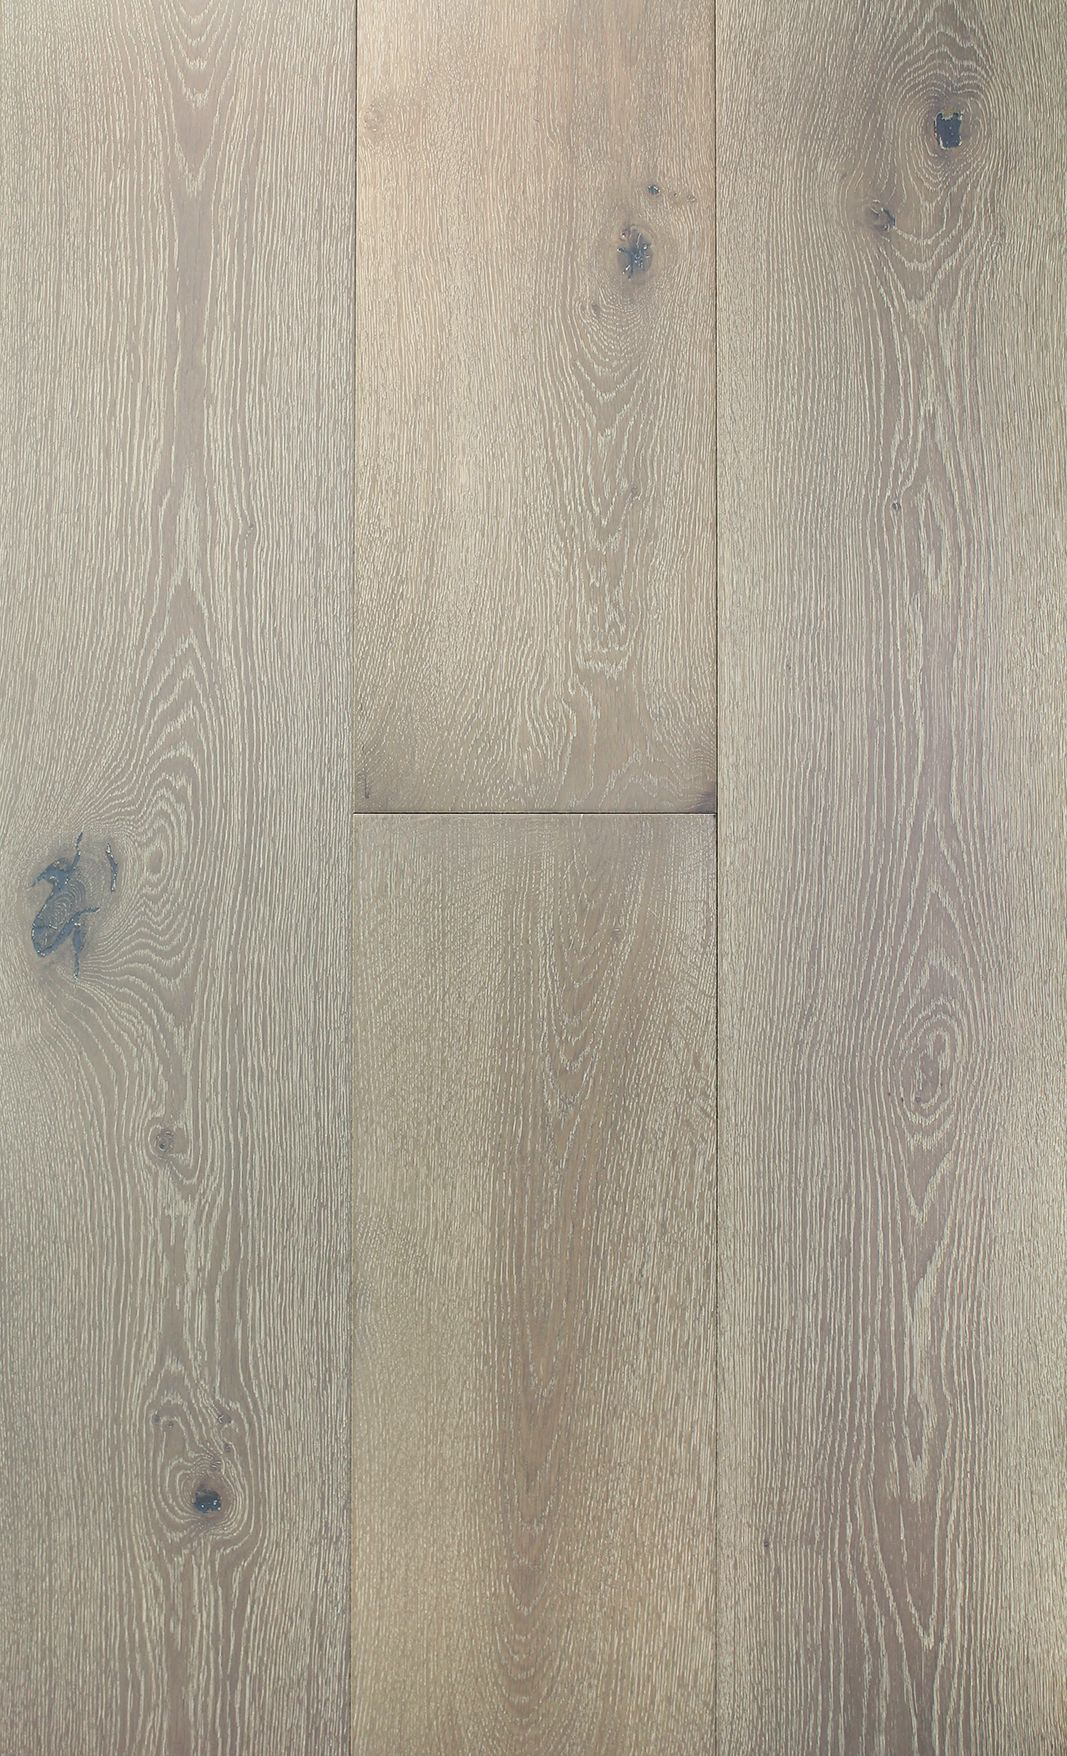 Engineered Hardwood Eiffel Artistique Collection By